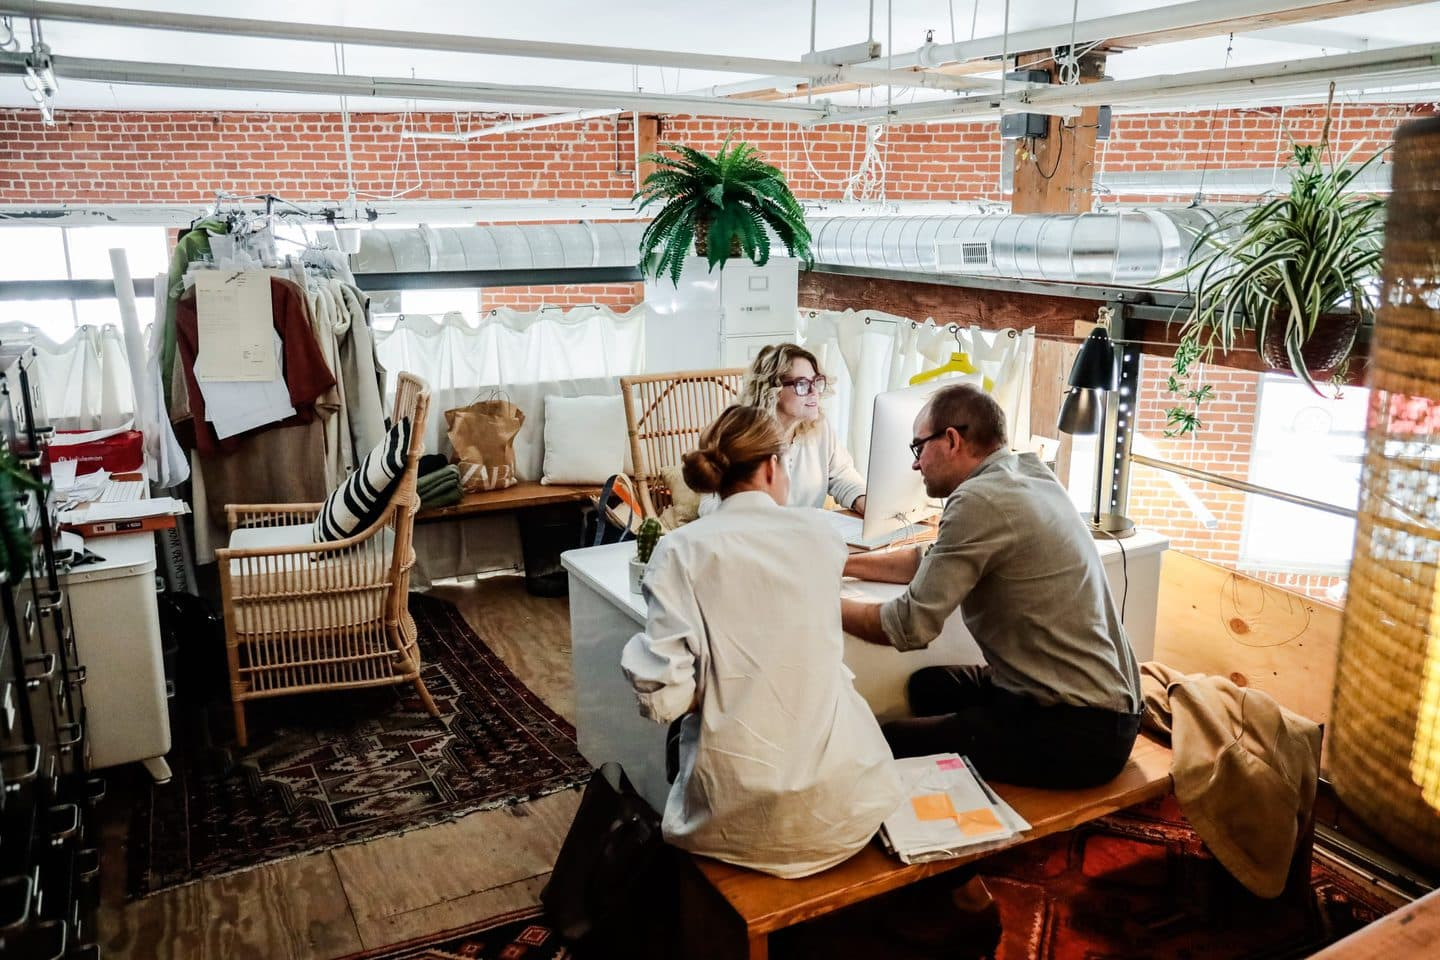 Three Los Angeles clothing manufacturers consulting a design in an office setting